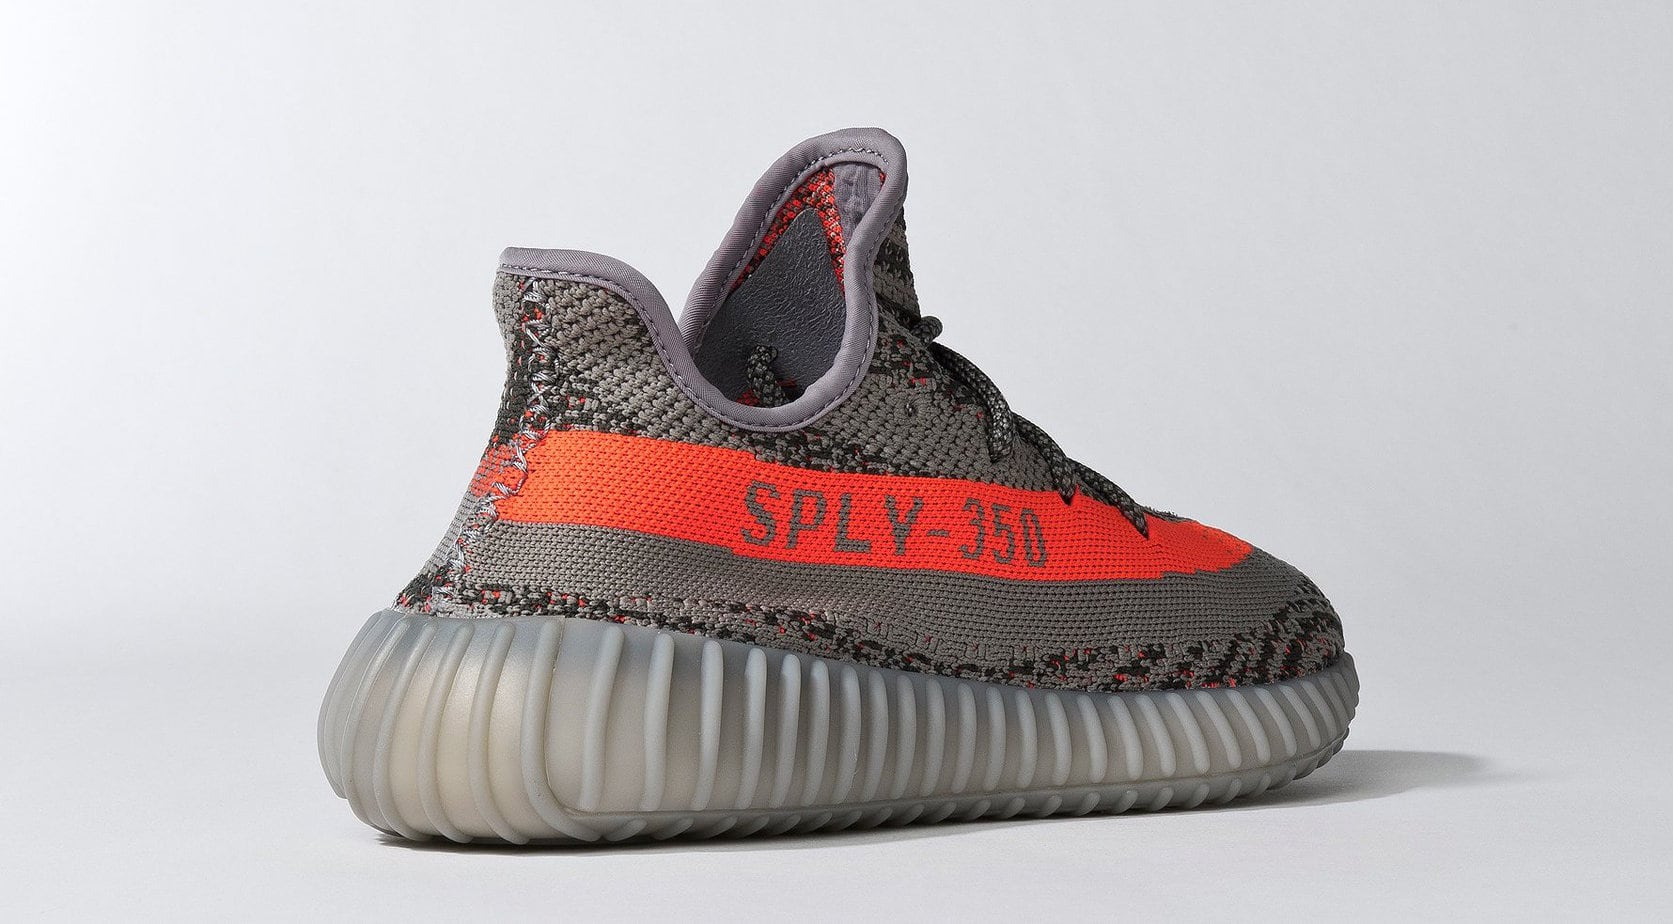 timeless design ff711 721bd ... adidas Yeezy 350 Boost V2 Beluga September 24th